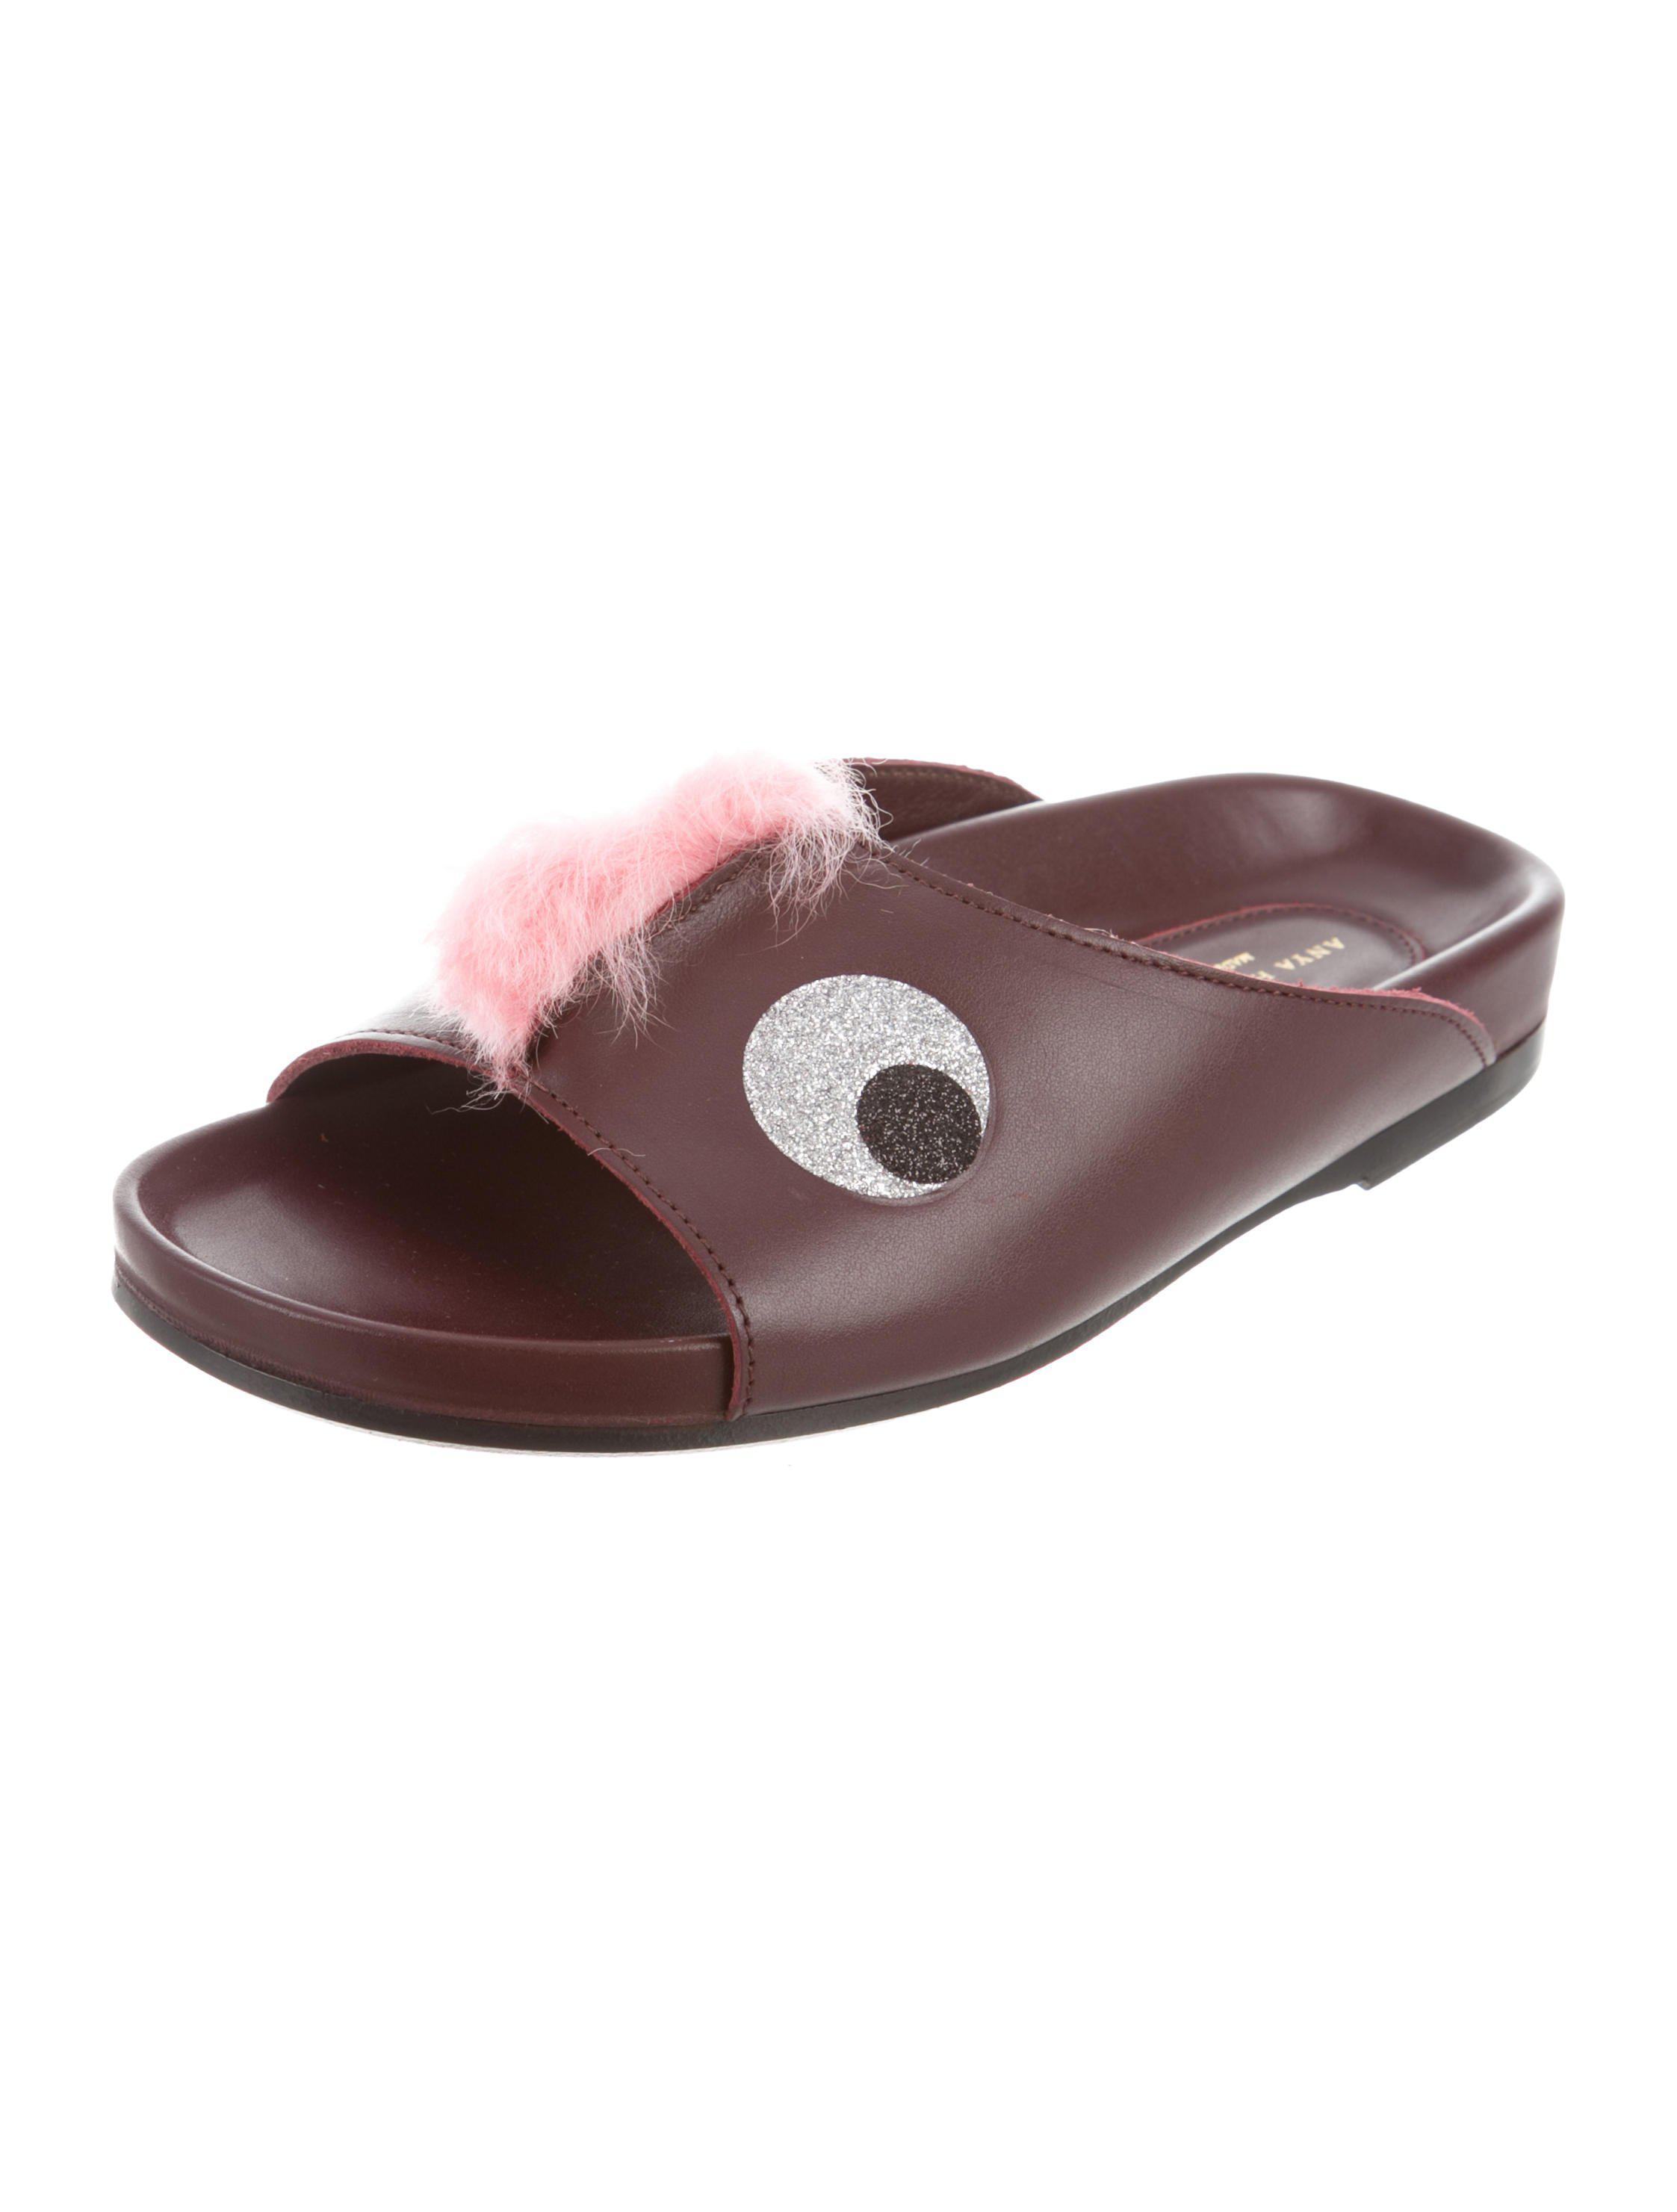 Anya Hindmarch Faux Fur-Trimmed Slide Sandals w/ Tags outlet where can you find pV2BYd